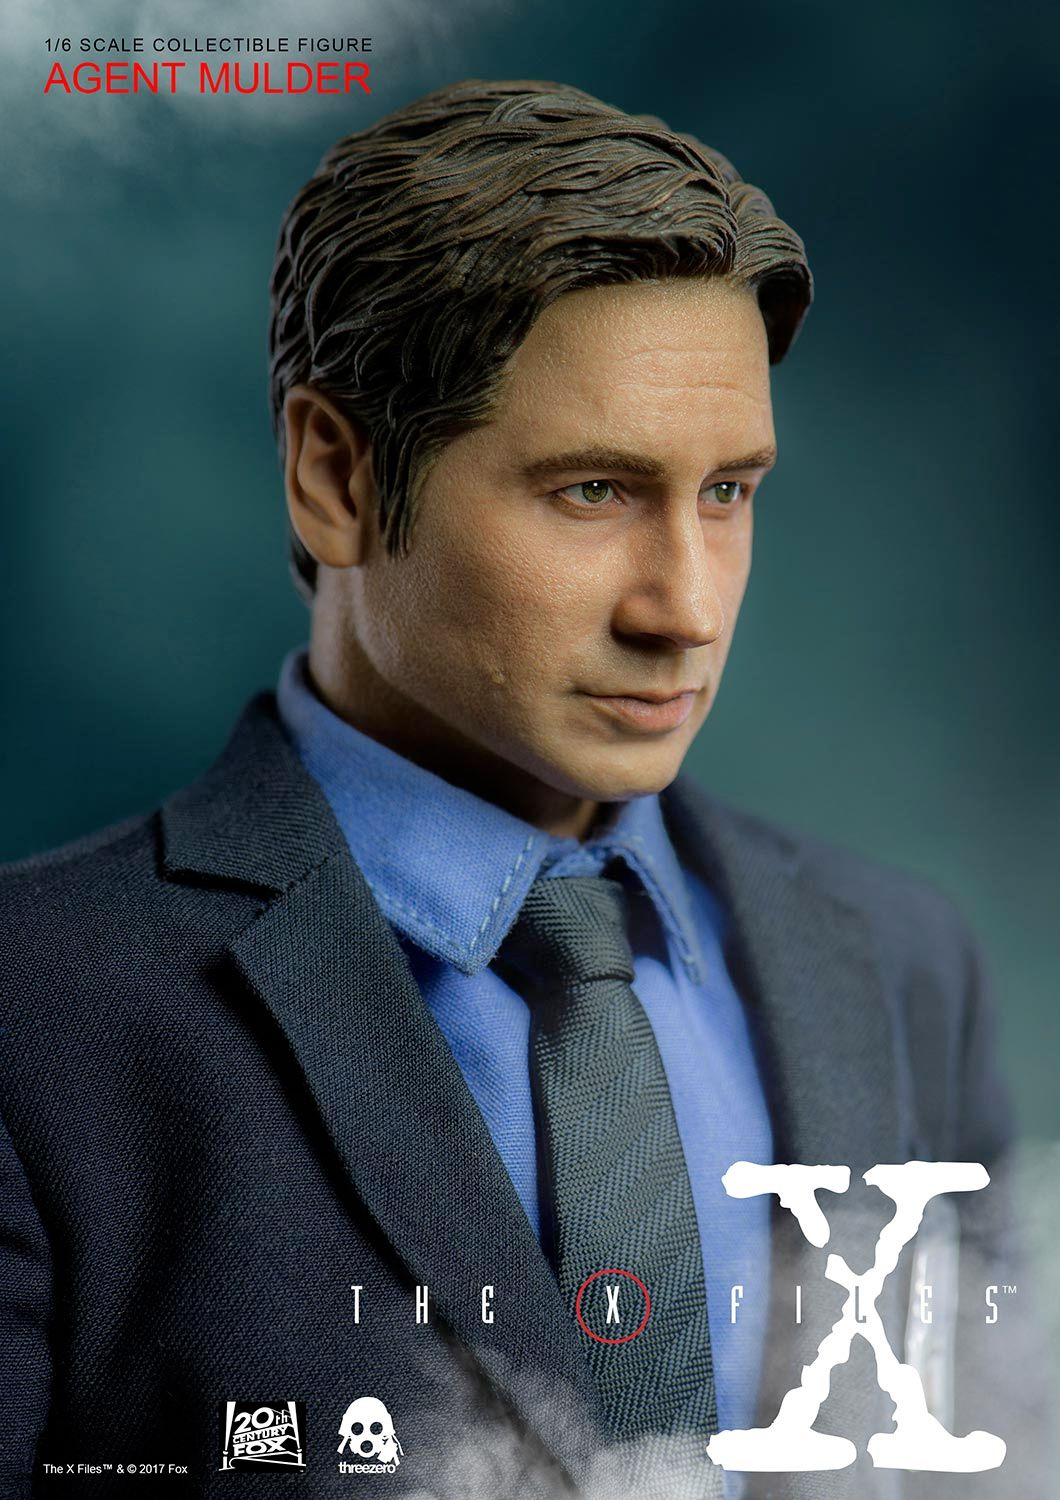 Agent-Mulder-X-Files-Collectible-Figure-ThreeZero-03